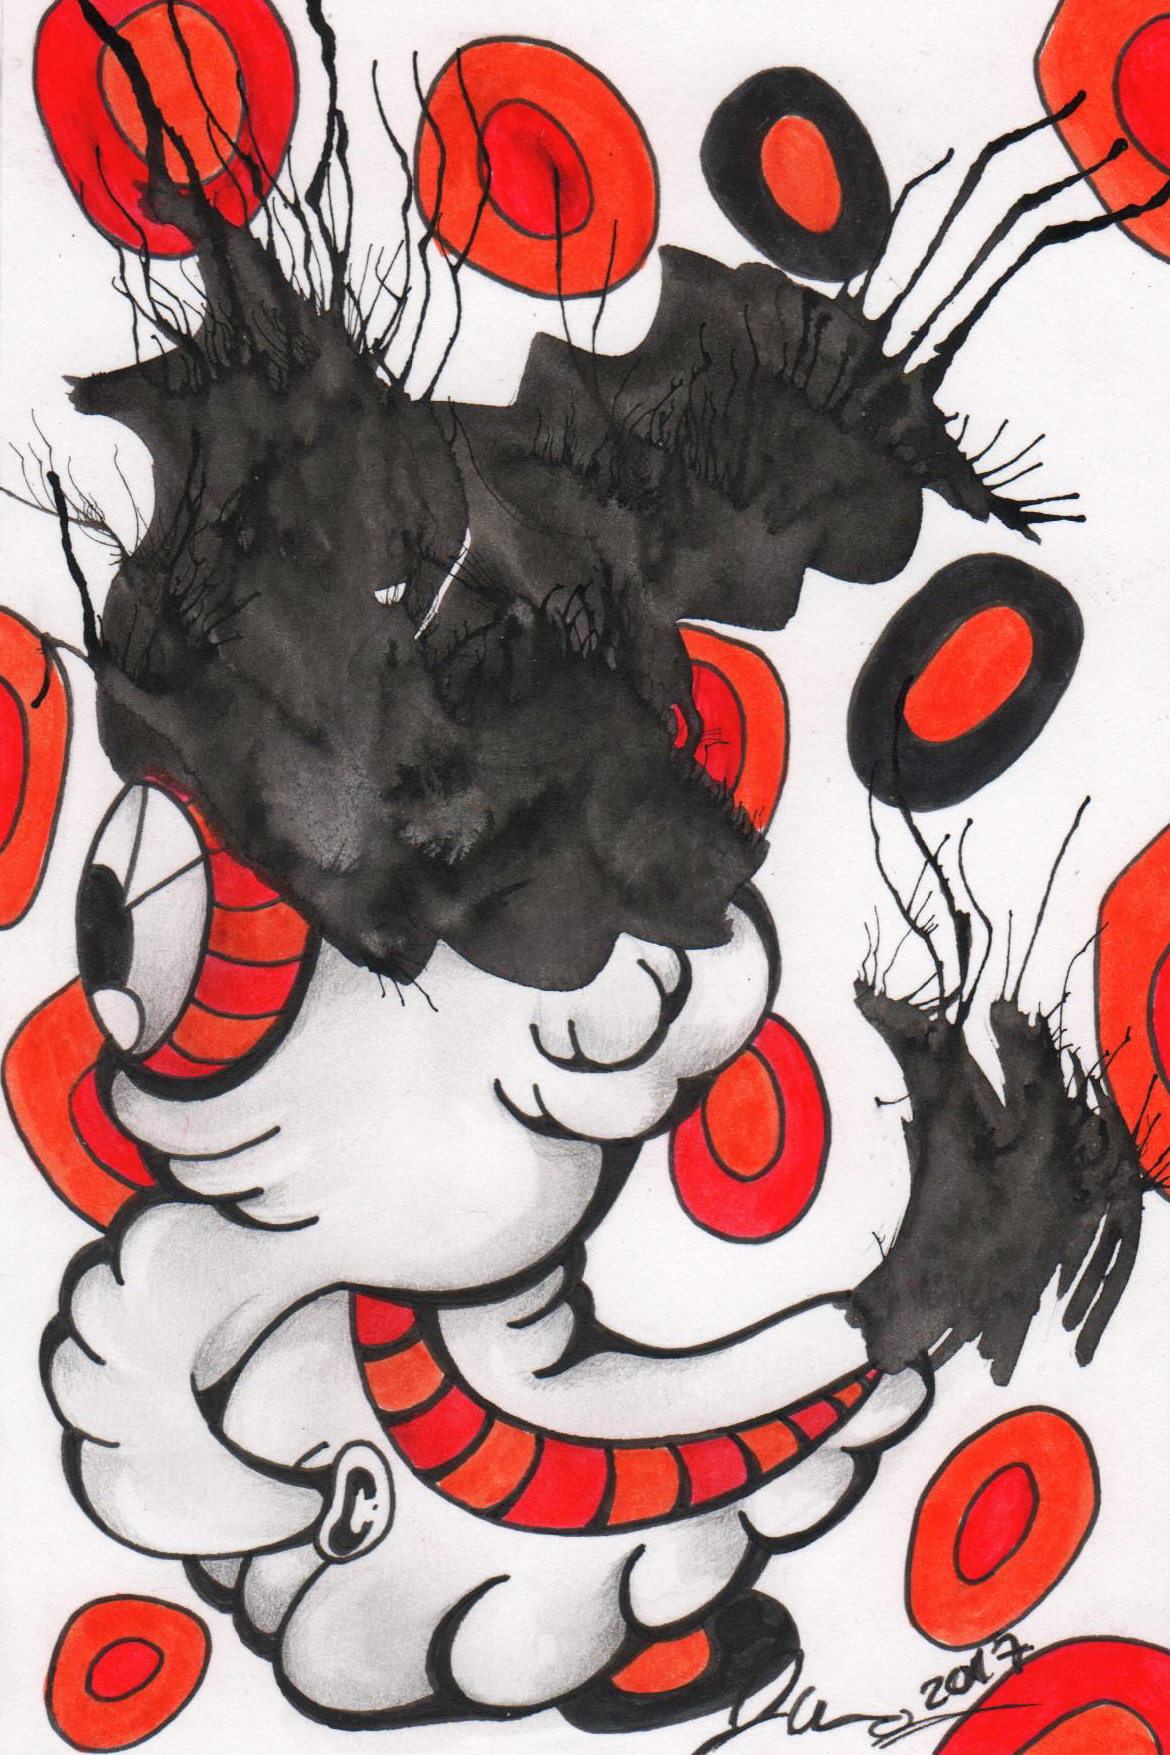 Ink Blot Monster #15